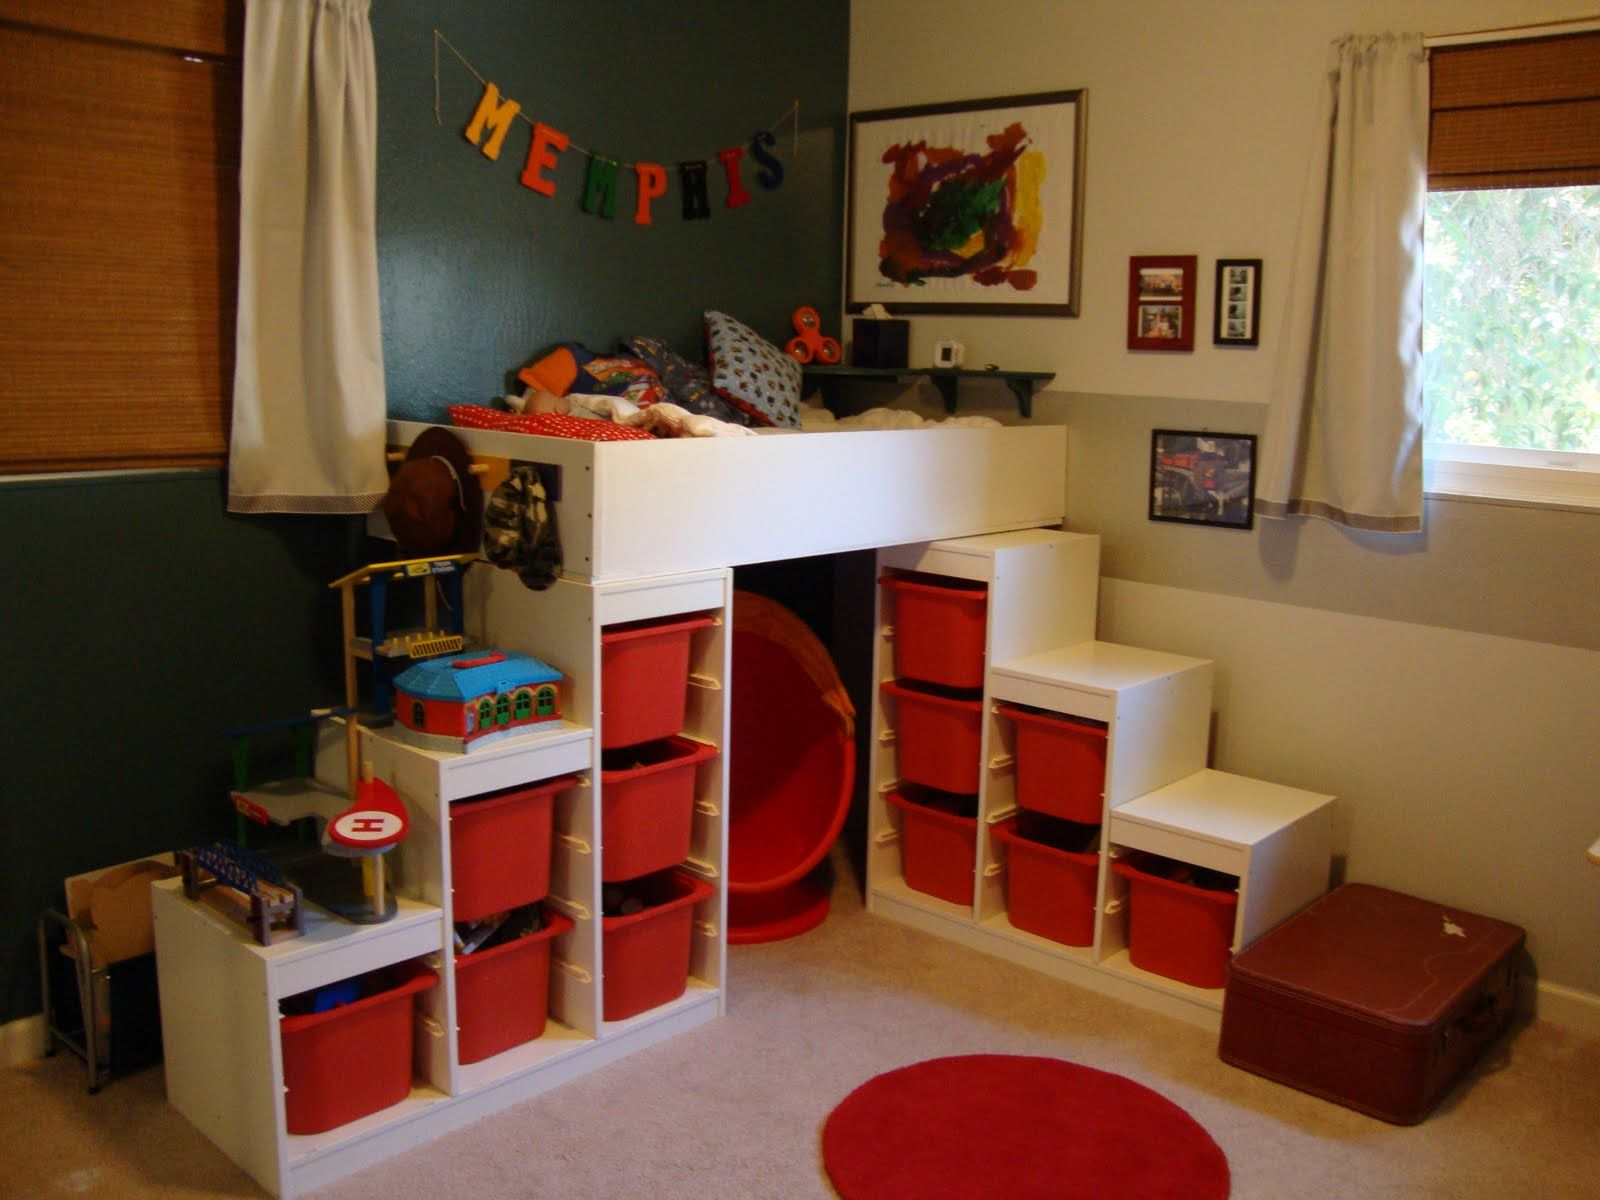 Bunk beds for kids ikea - Using An Ikea Trofast To Make A Loft Bed